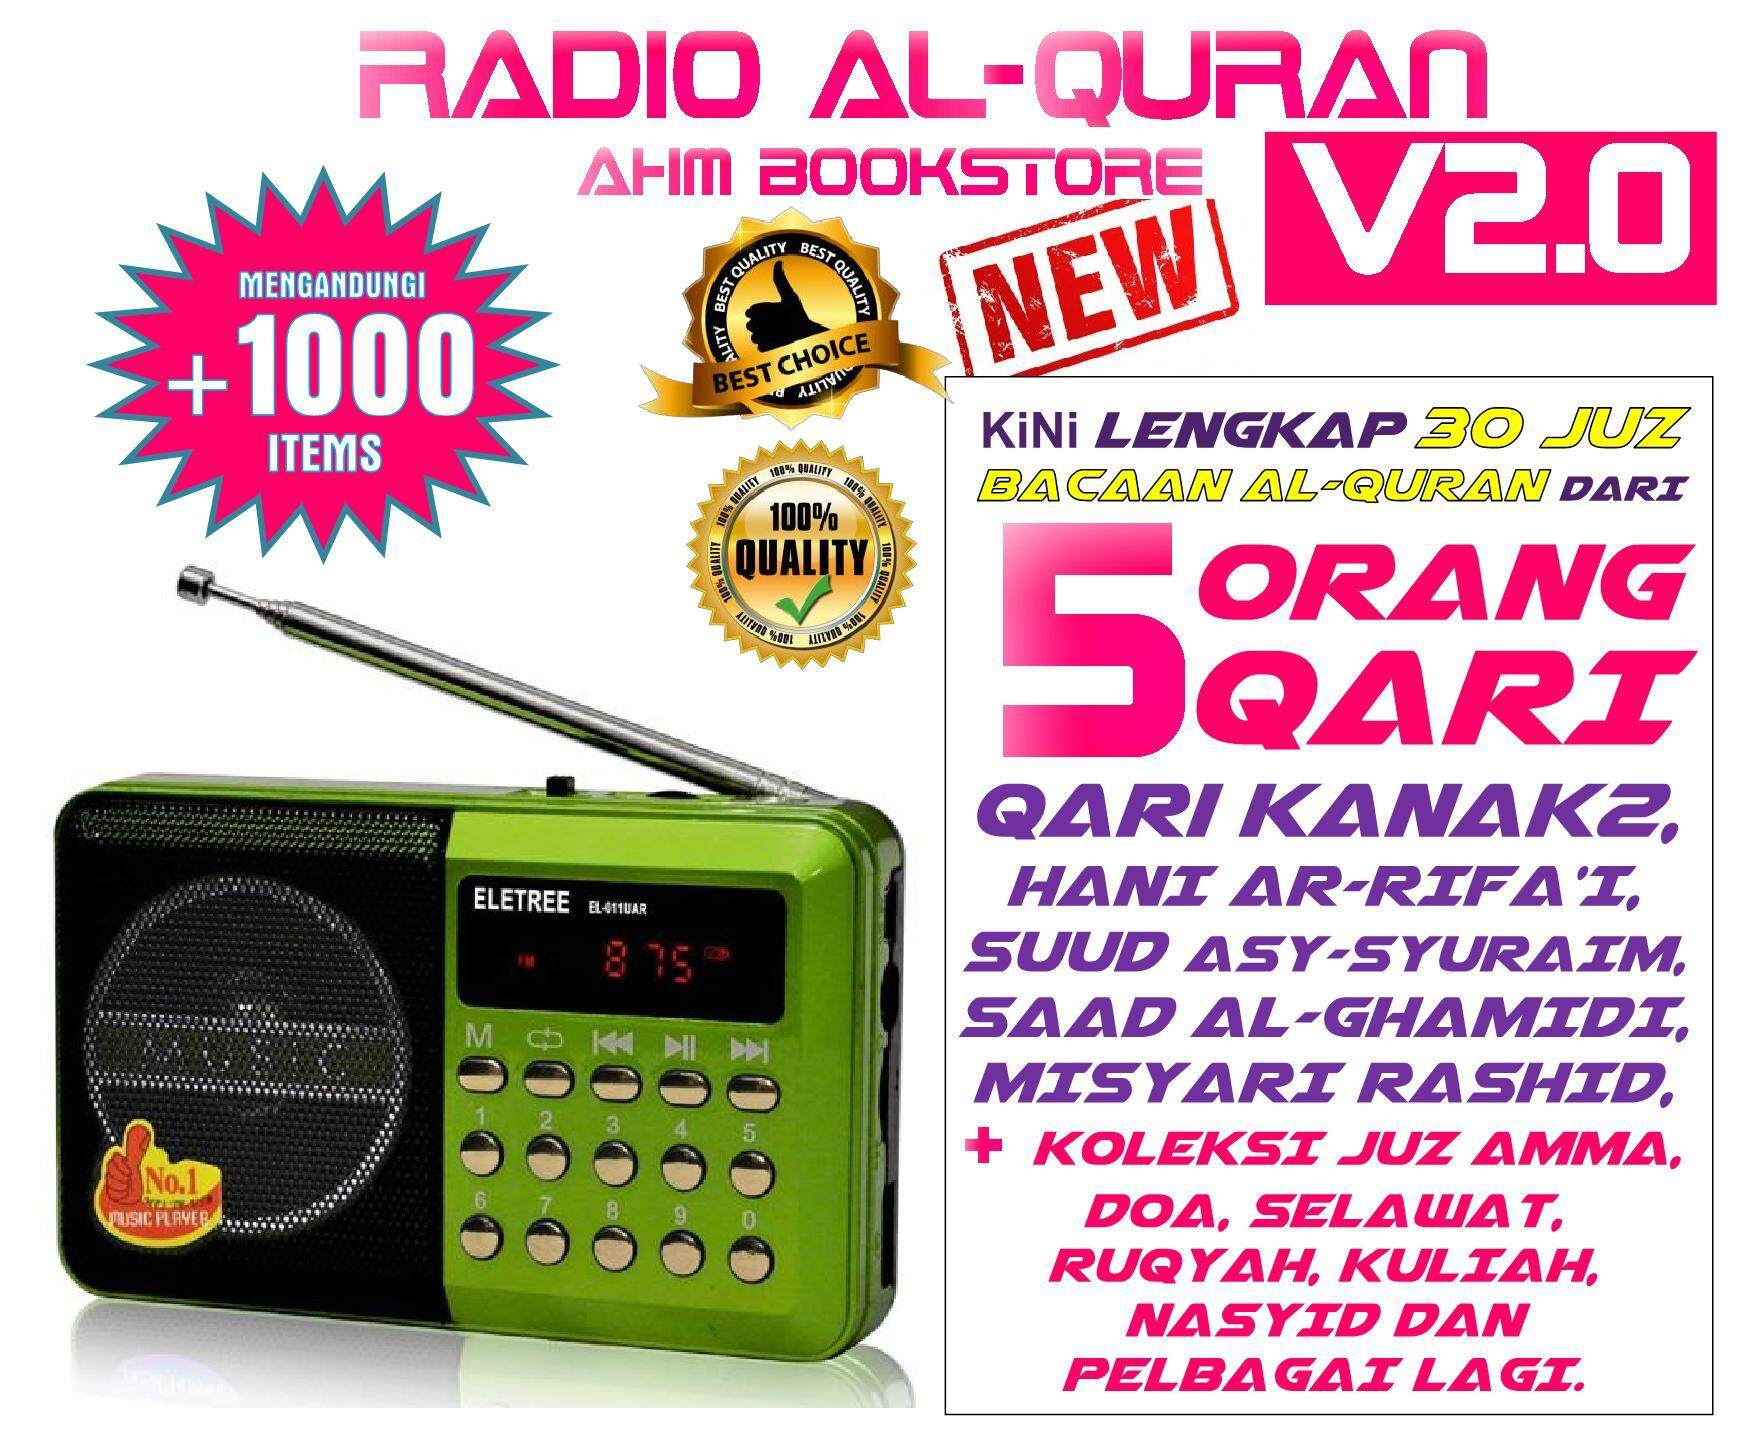 Radio Al-Quran Ahm Bookstore V2.0 Complete 30 Juz With 5 Qari Option (green) By Ahm Bookstore.